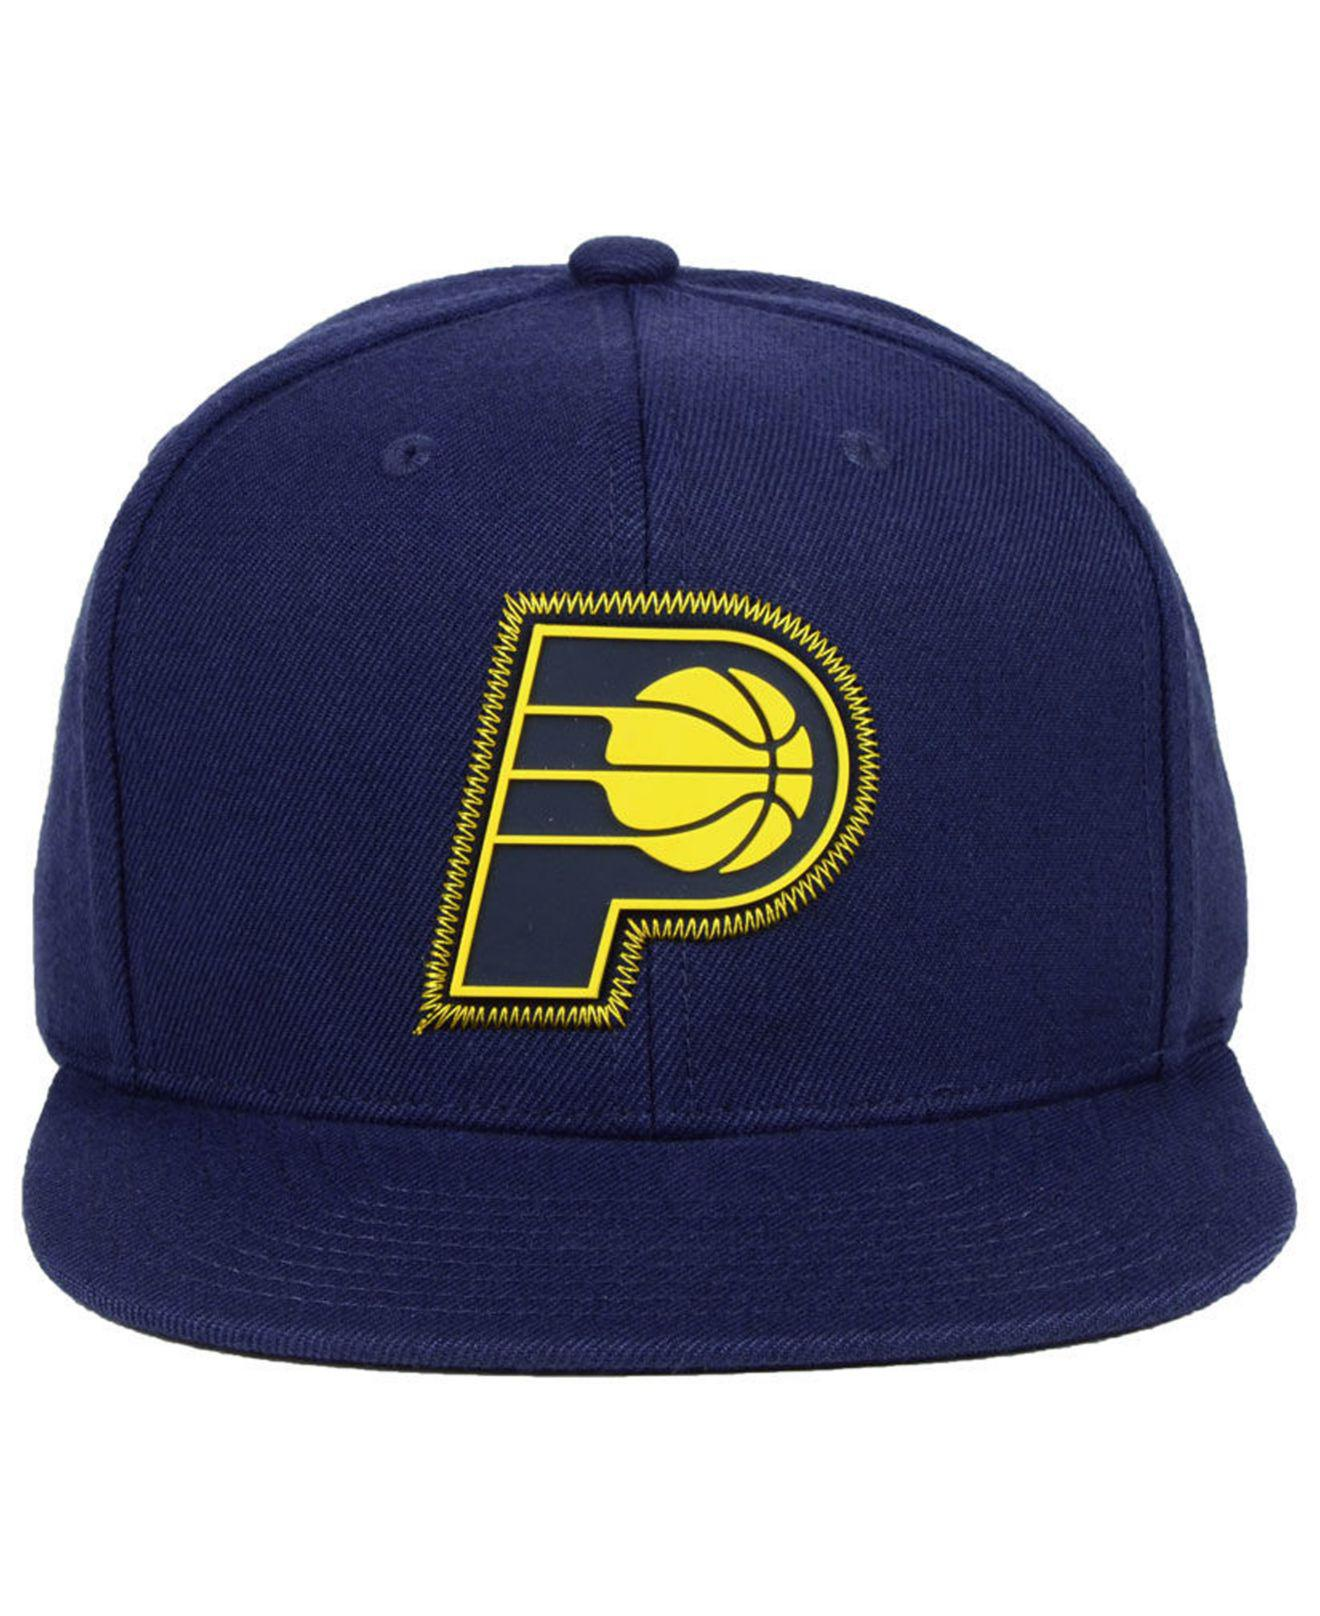 promo code fc5c1 fd3c8 Lyst - Mitchell   Ness Indiana Pacers Zig Zag Snapback Cap in Blue for Men